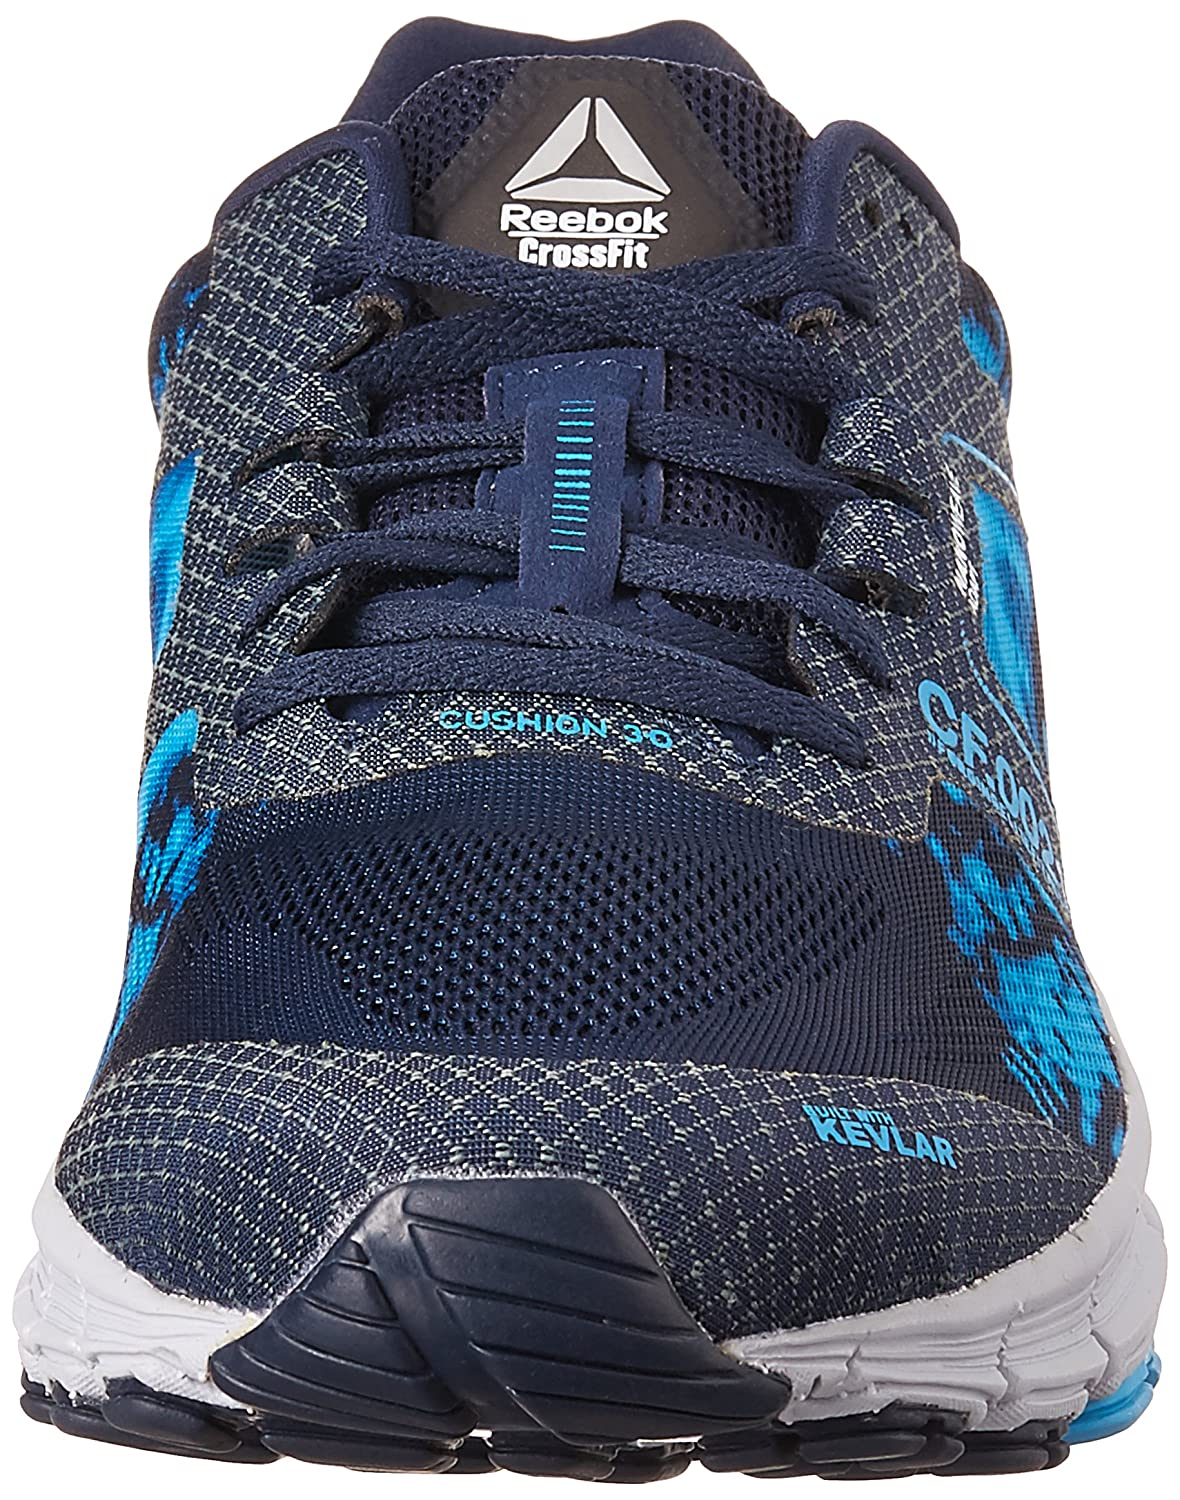 reebok crossfit shoes blue. reebok men\u0027s r crossfit one cushion3.0 navy, blue, black and grey running shoes - 9 uk/india (43 eu) (10 us): buy online at low prices in india amazon.in blue e